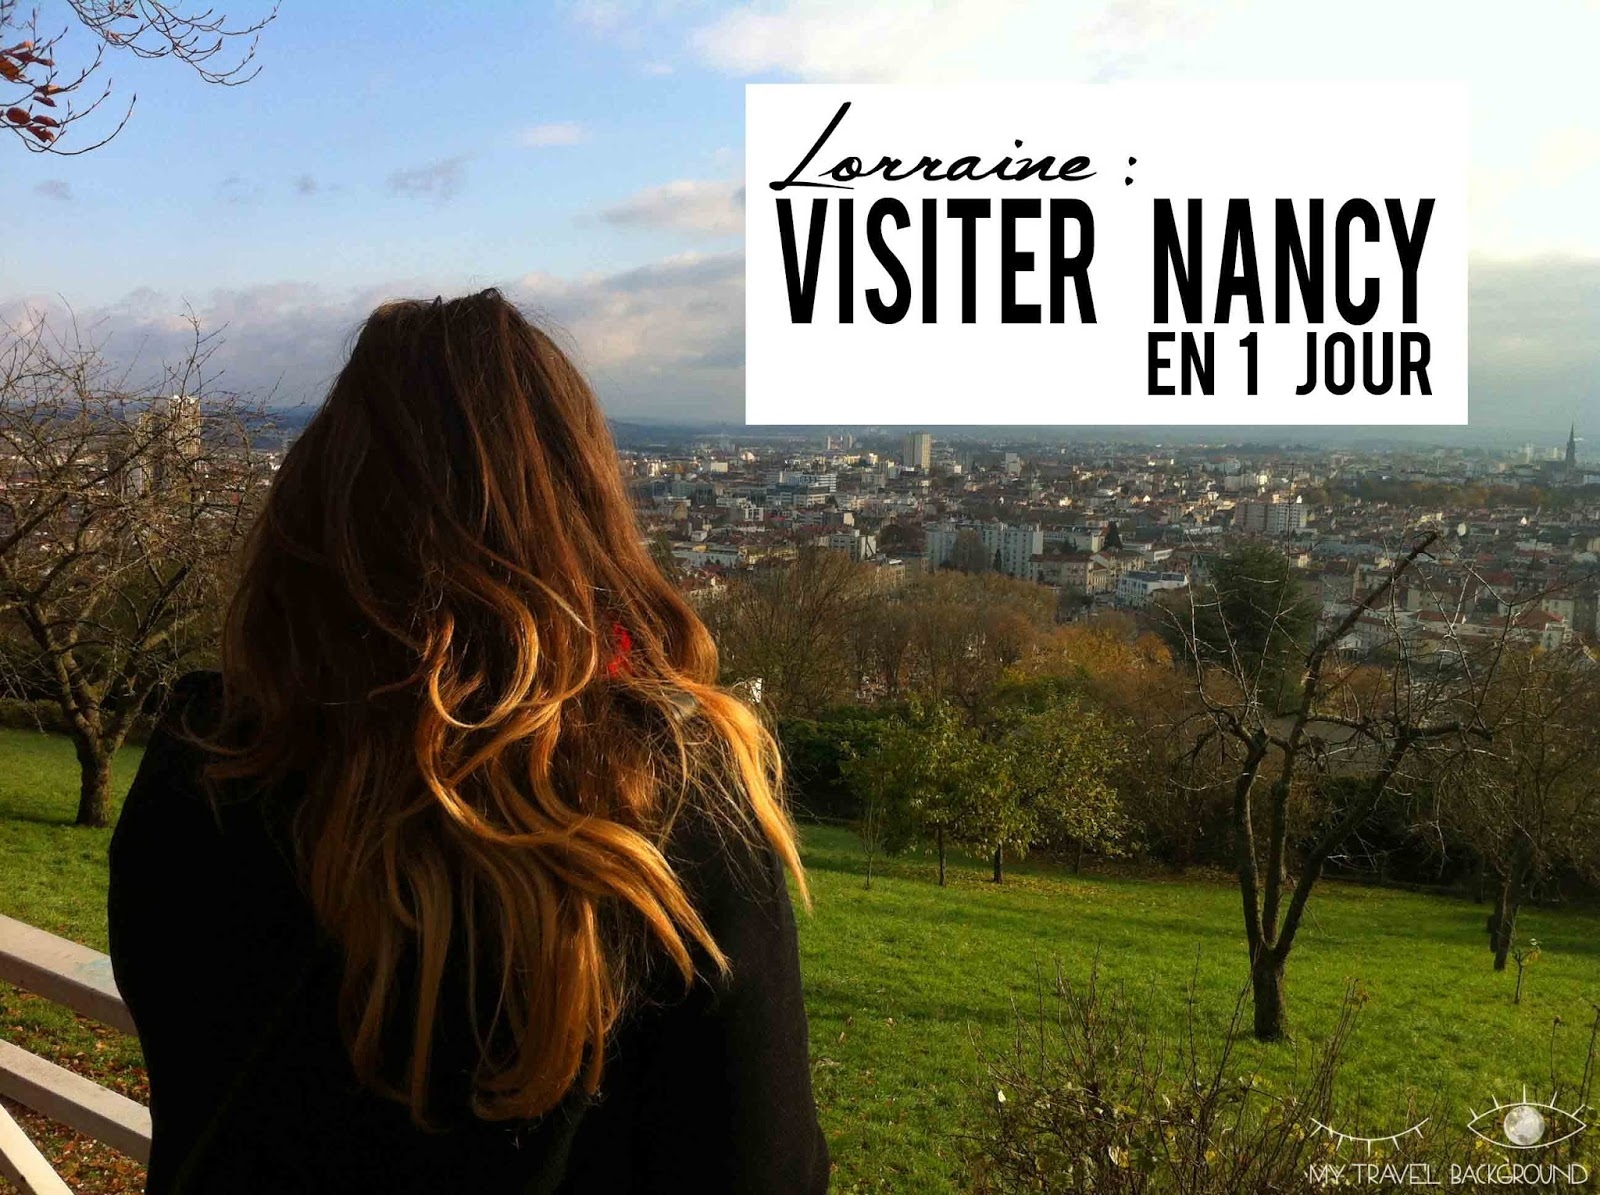 My Travel Background : Visiter Nancy en 1 jour